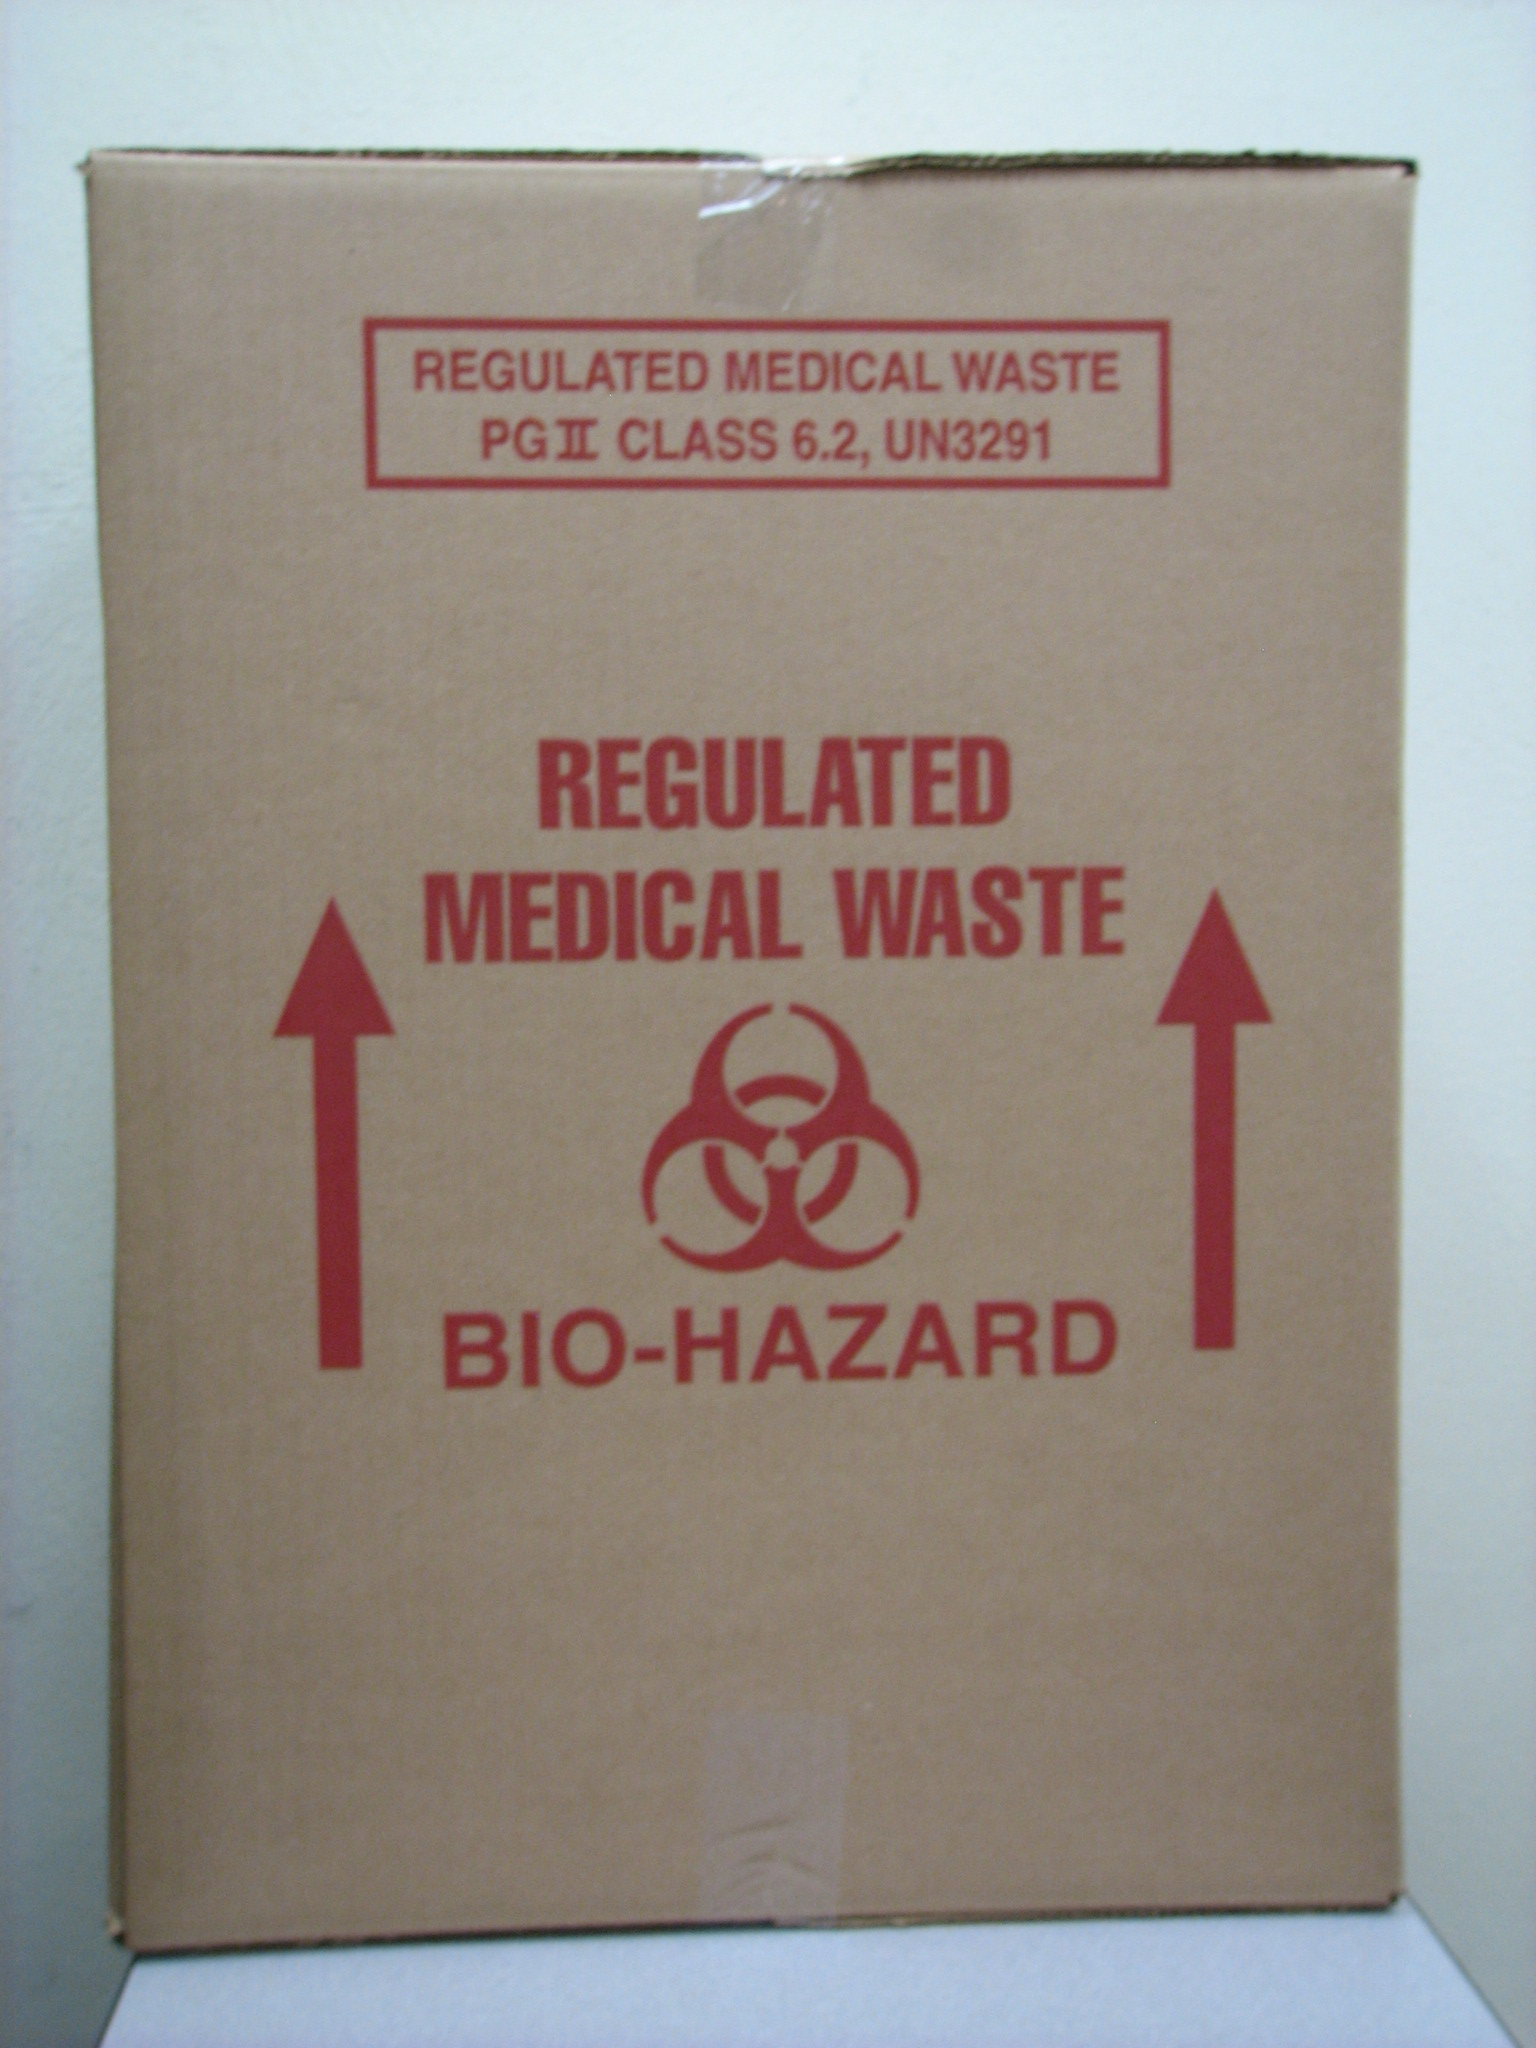 regulated medical waste containers